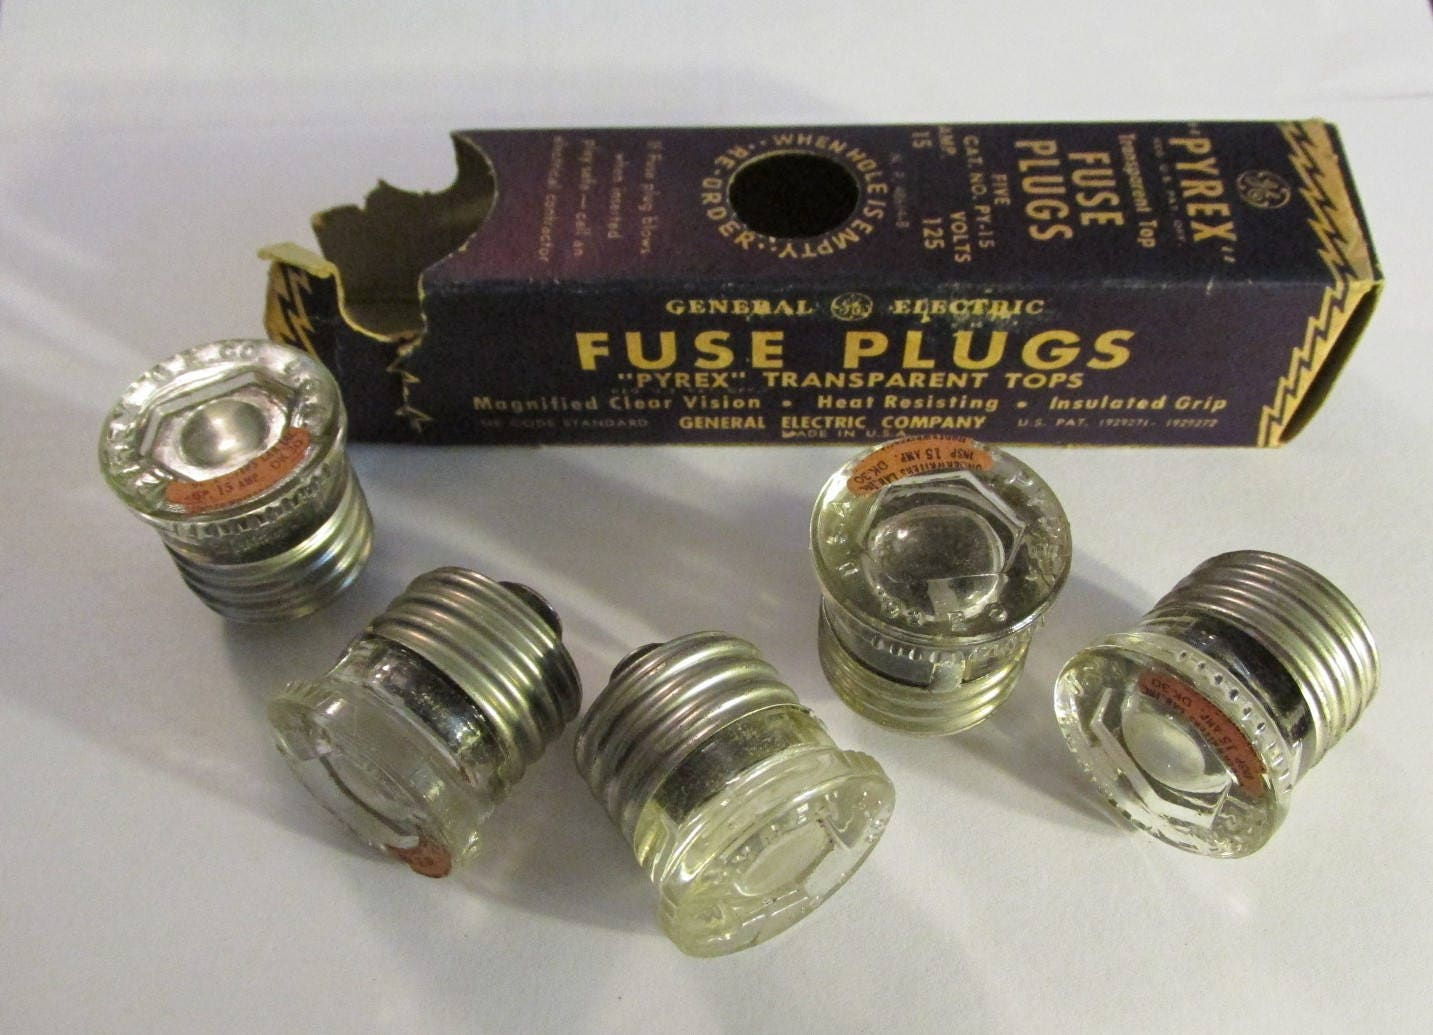 vintage 1930s box of 5 pyrex fuse plugs ge 15 amp general electric The Fuse Box Paisley The Fuse Box Paisley #81 the fuse box paisley